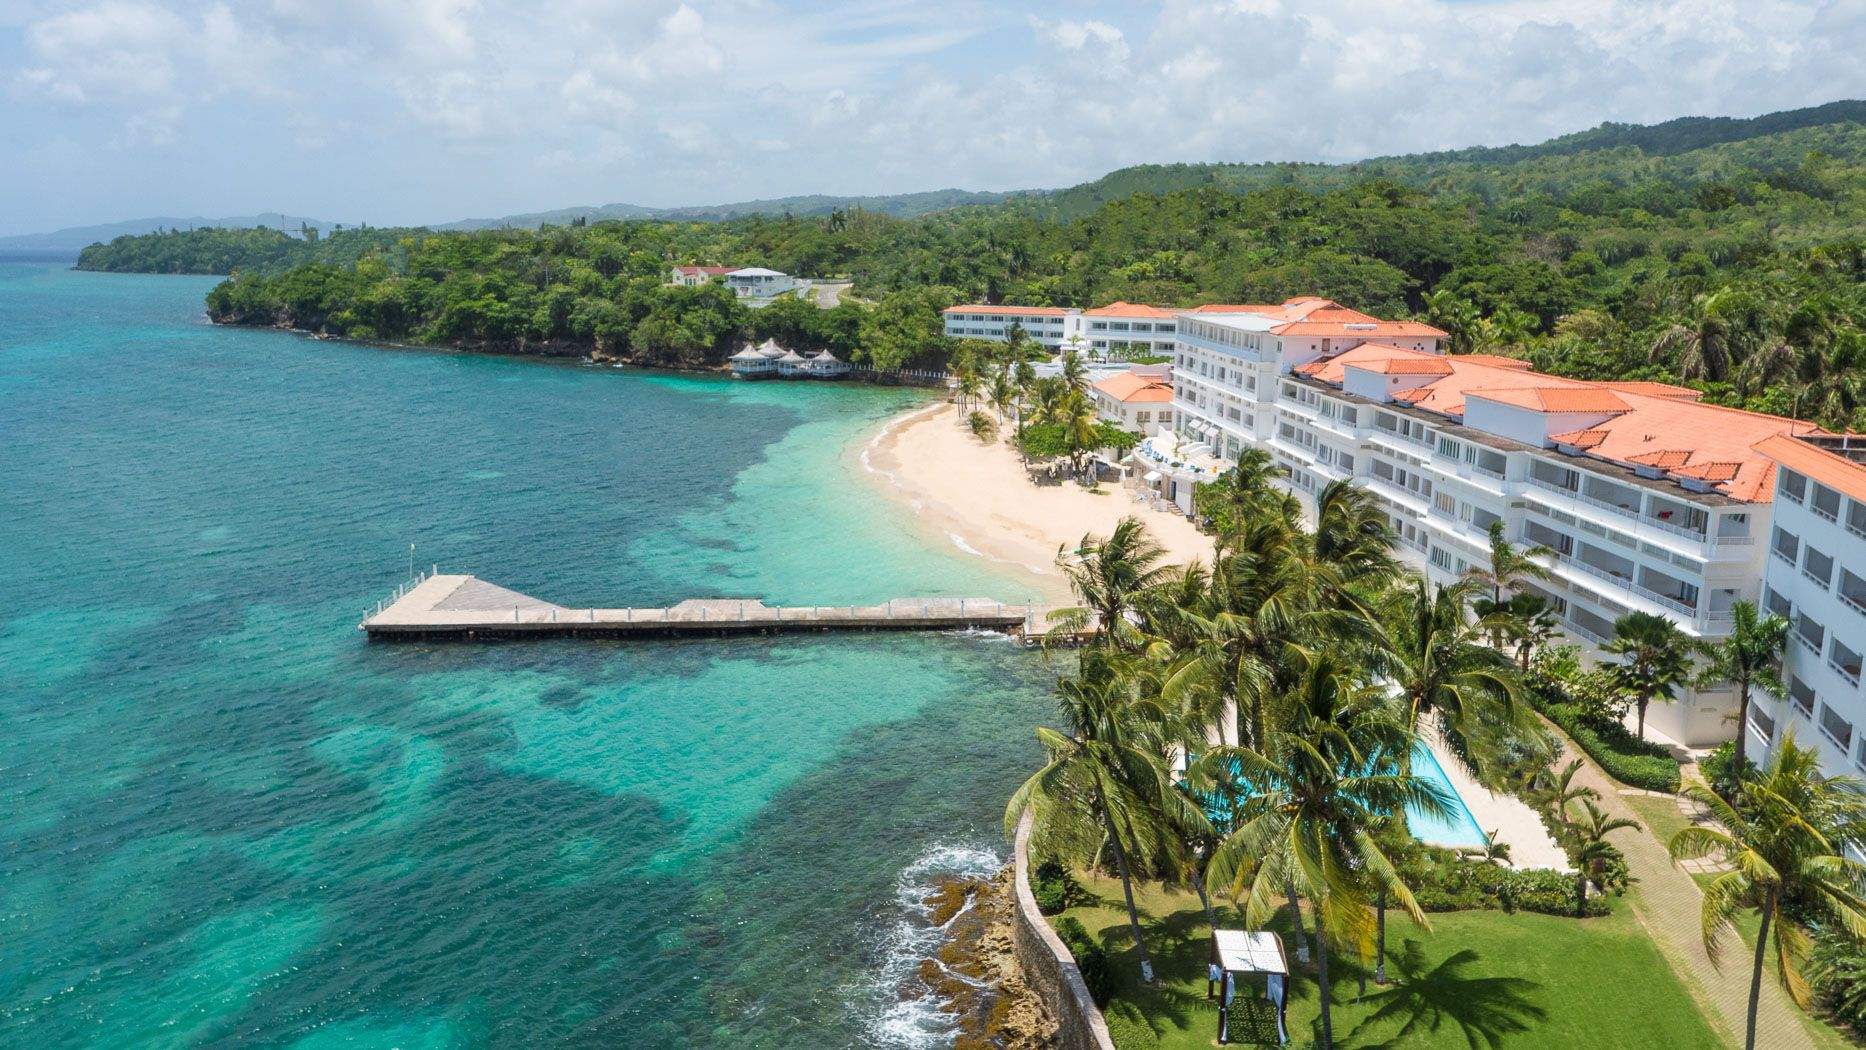 7ec2e478b0419 20 Best All-Inclusive Resorts to Visit - Best All-Inclusive Vacations